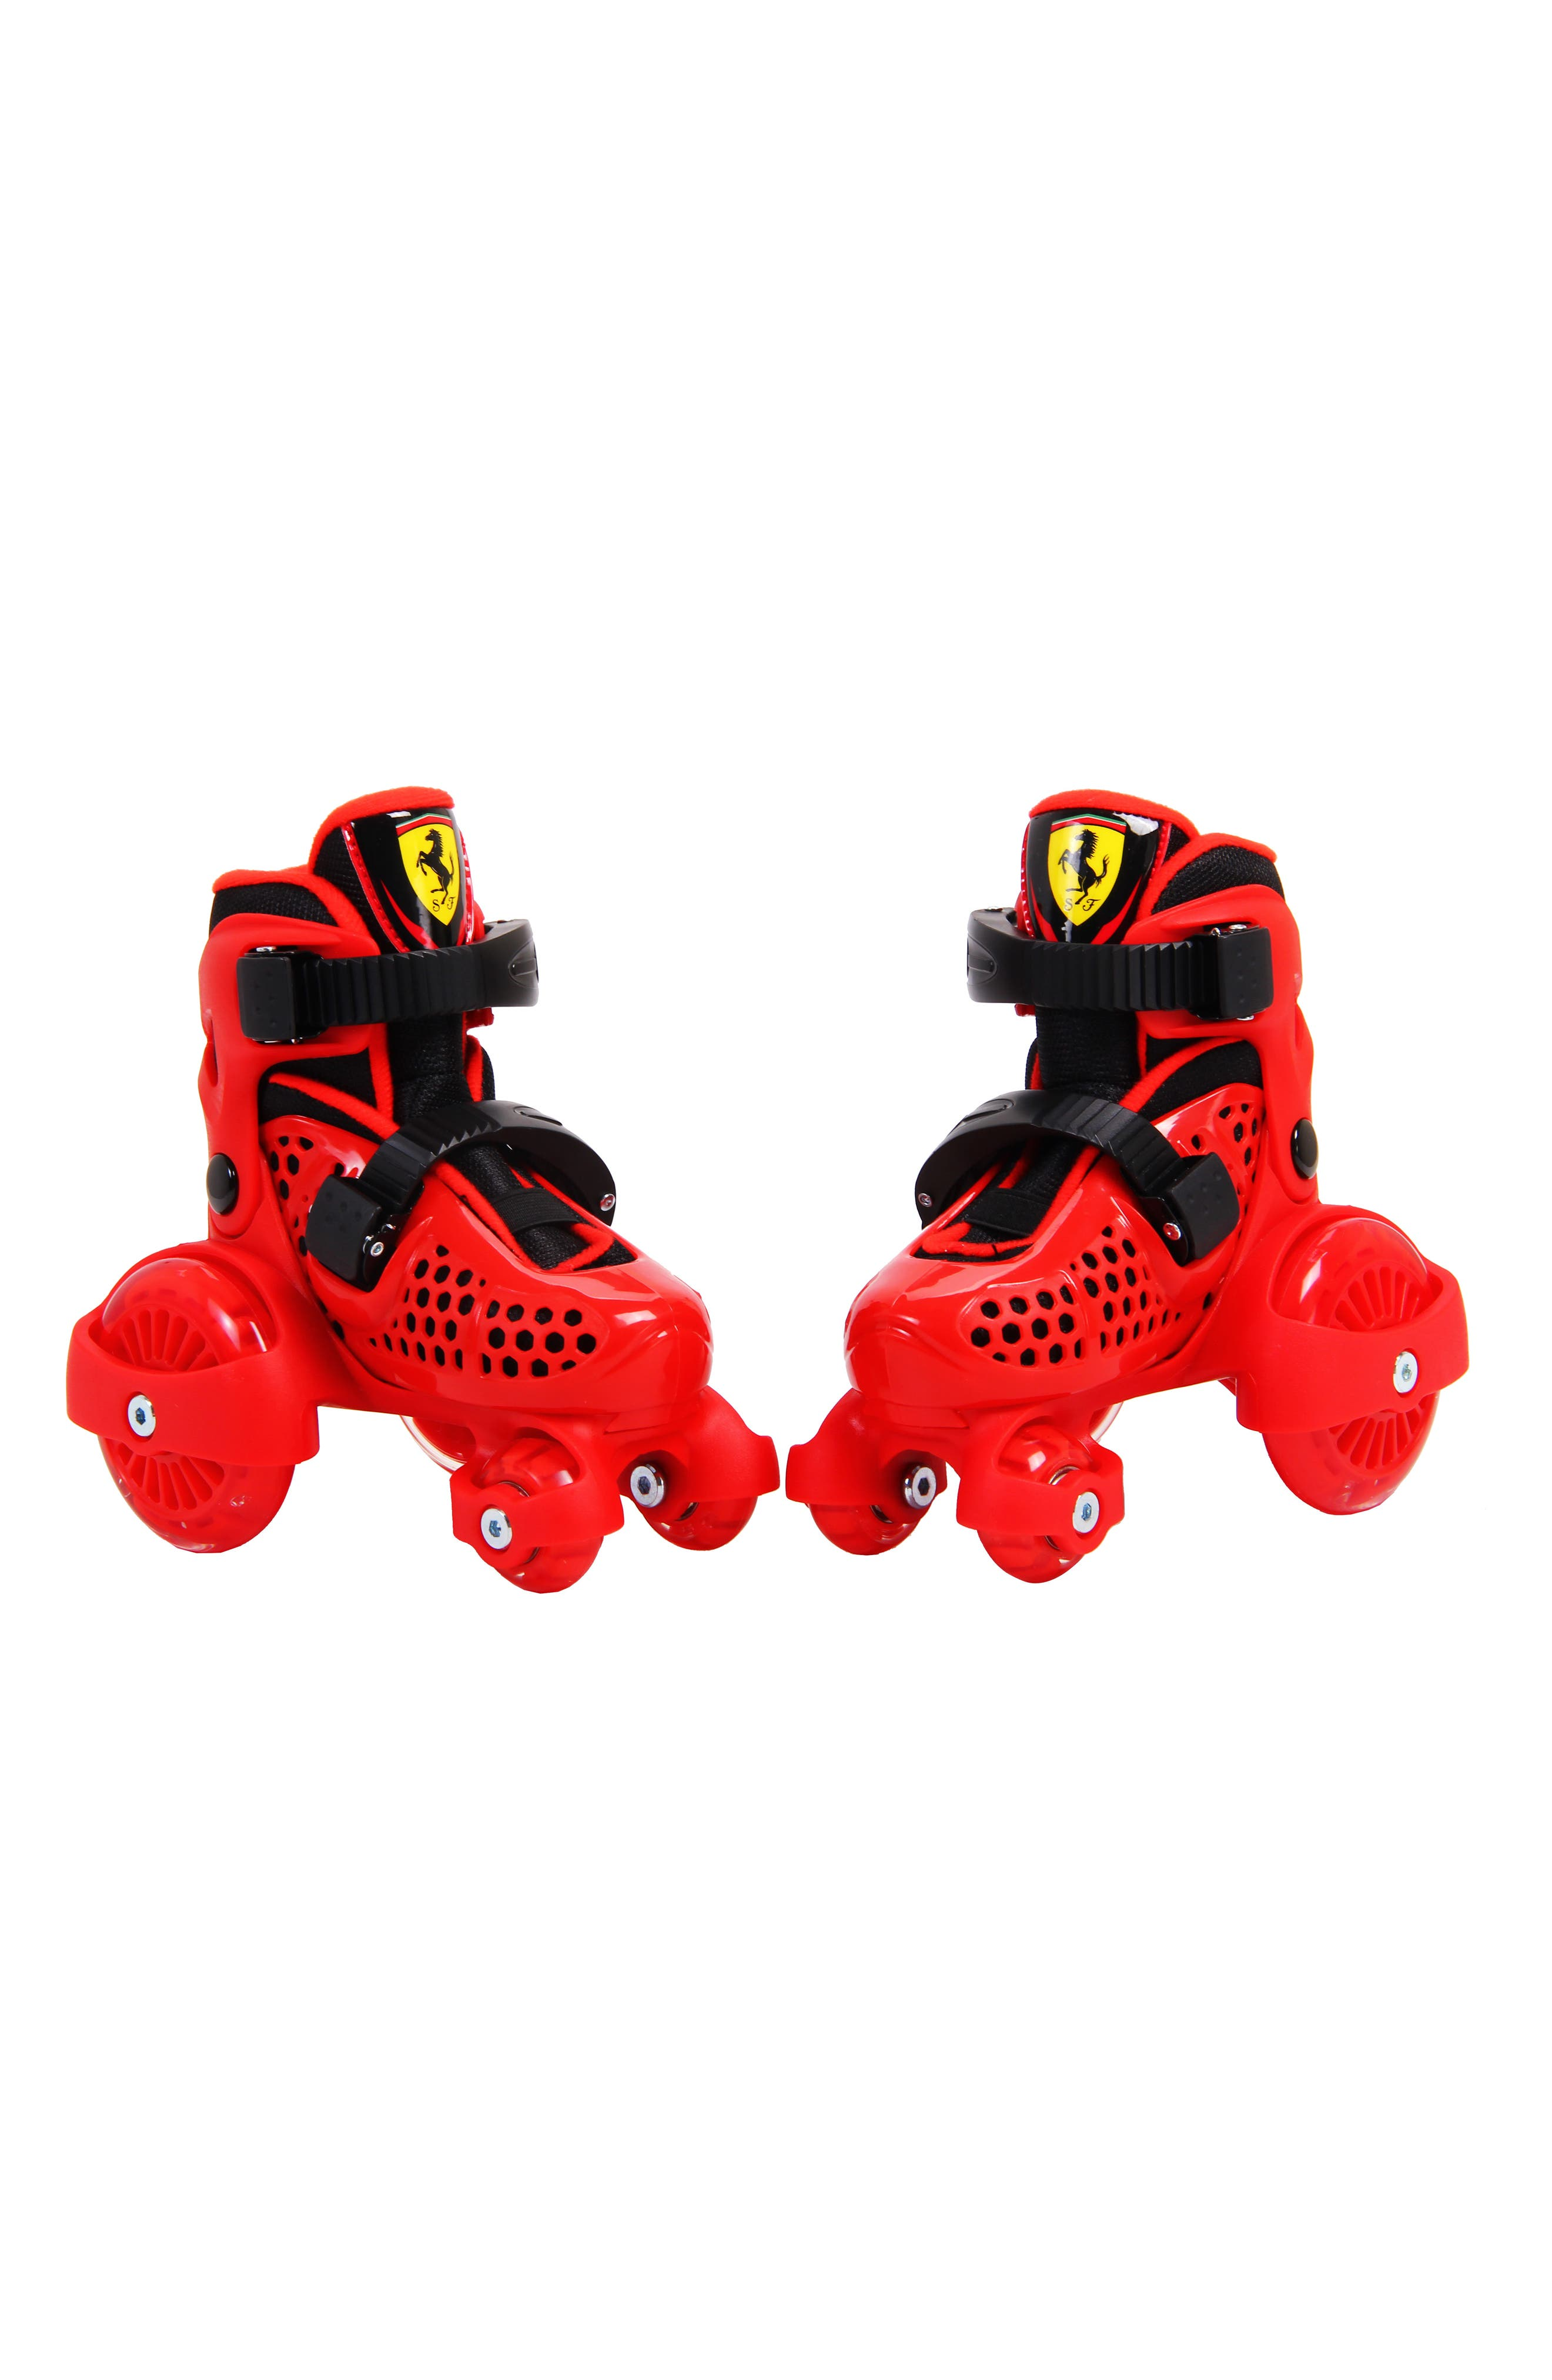 My First Skate Rollerskate & Protective Gear Set,                             Alternate thumbnail 2, color,                             600